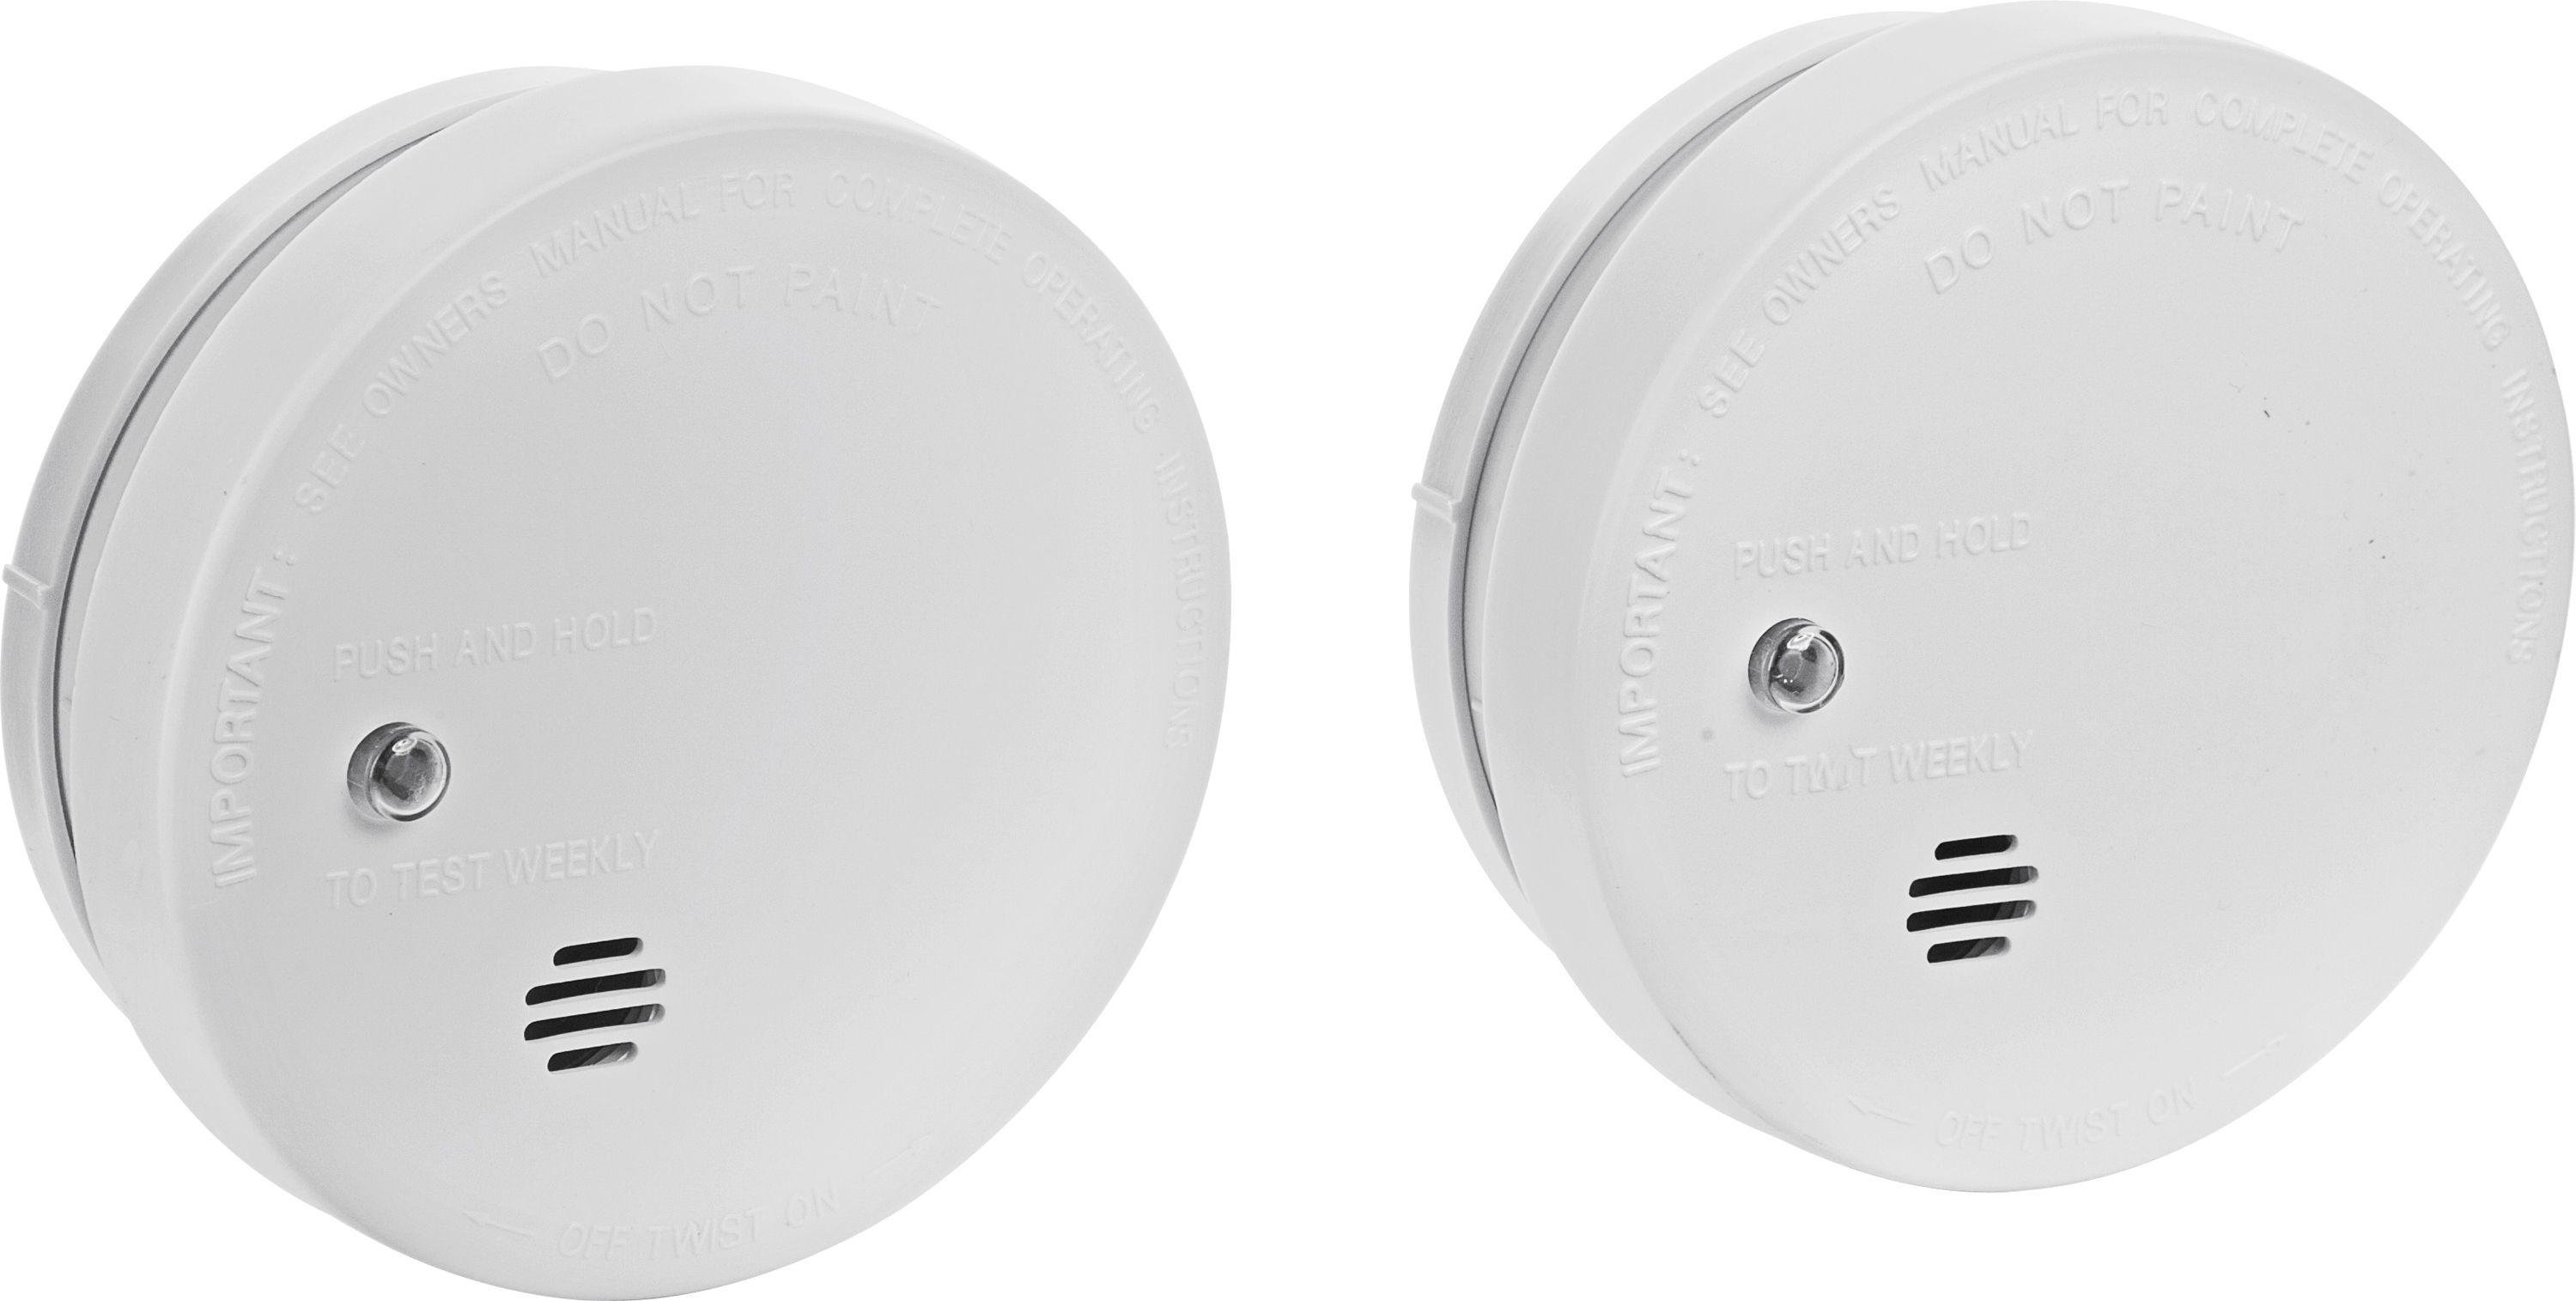 kidde micro compact smoke alarm twin pack 7001569. Black Bedroom Furniture Sets. Home Design Ideas